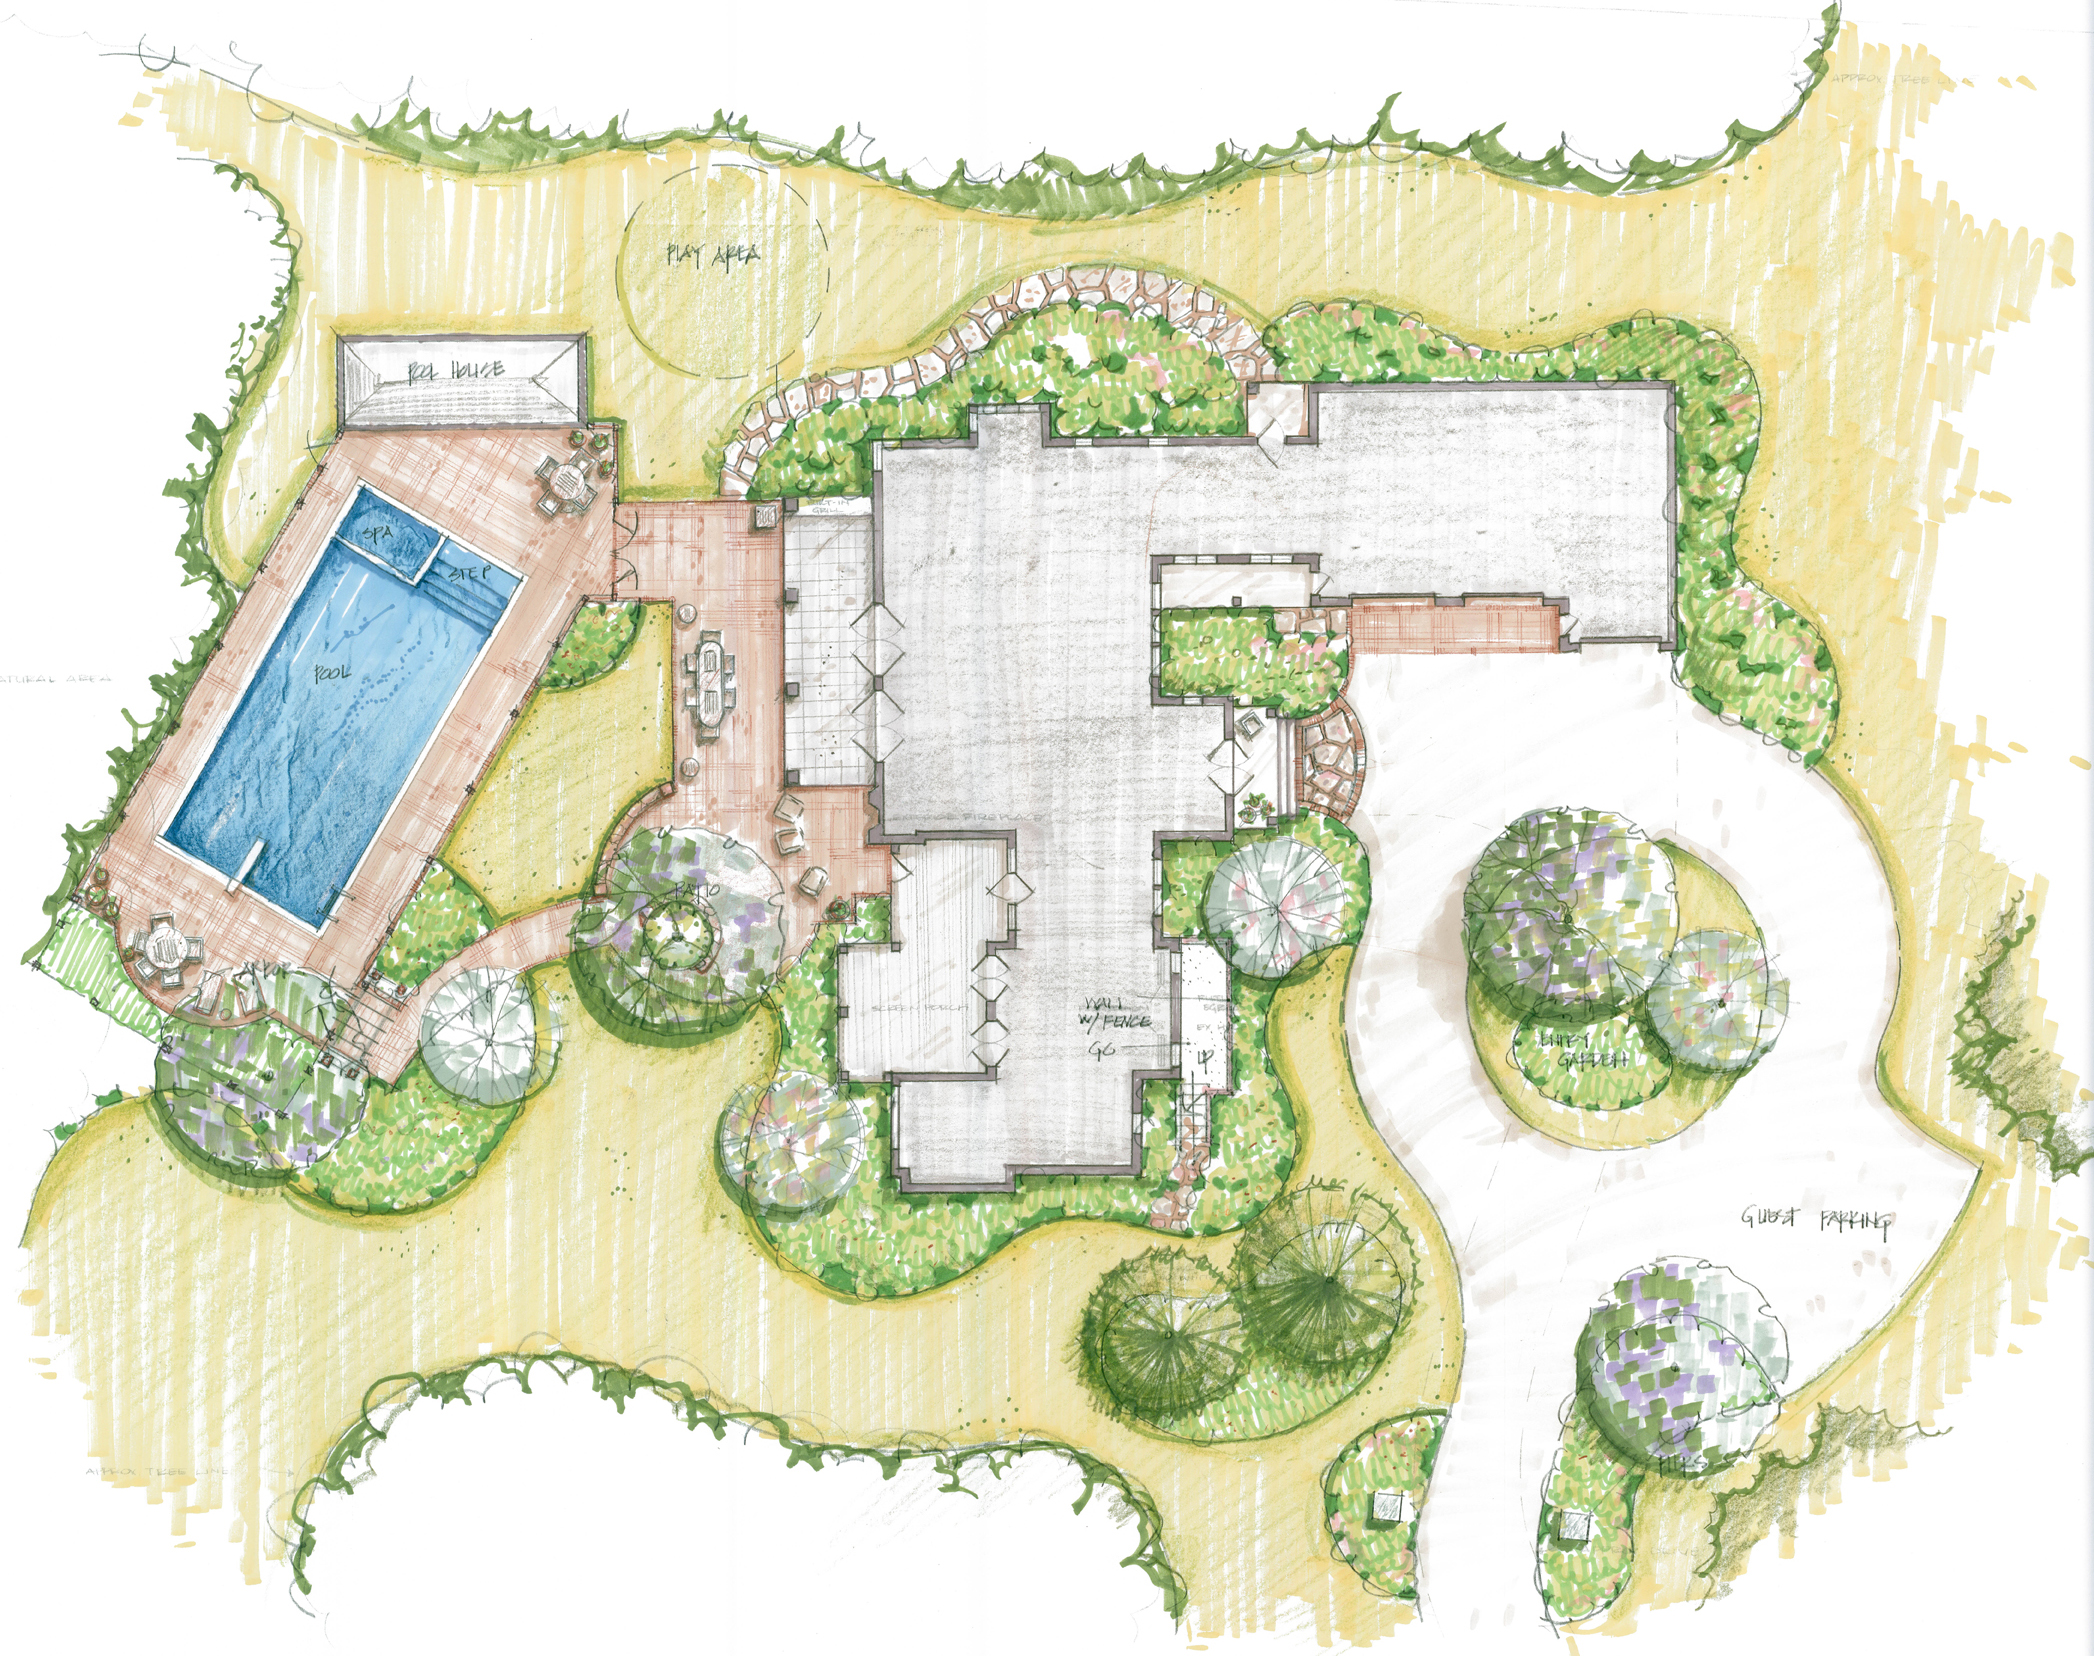 Garden Design And Planning Design Simple Reasons To Plan Your Landscape Design Landscape Design Plan